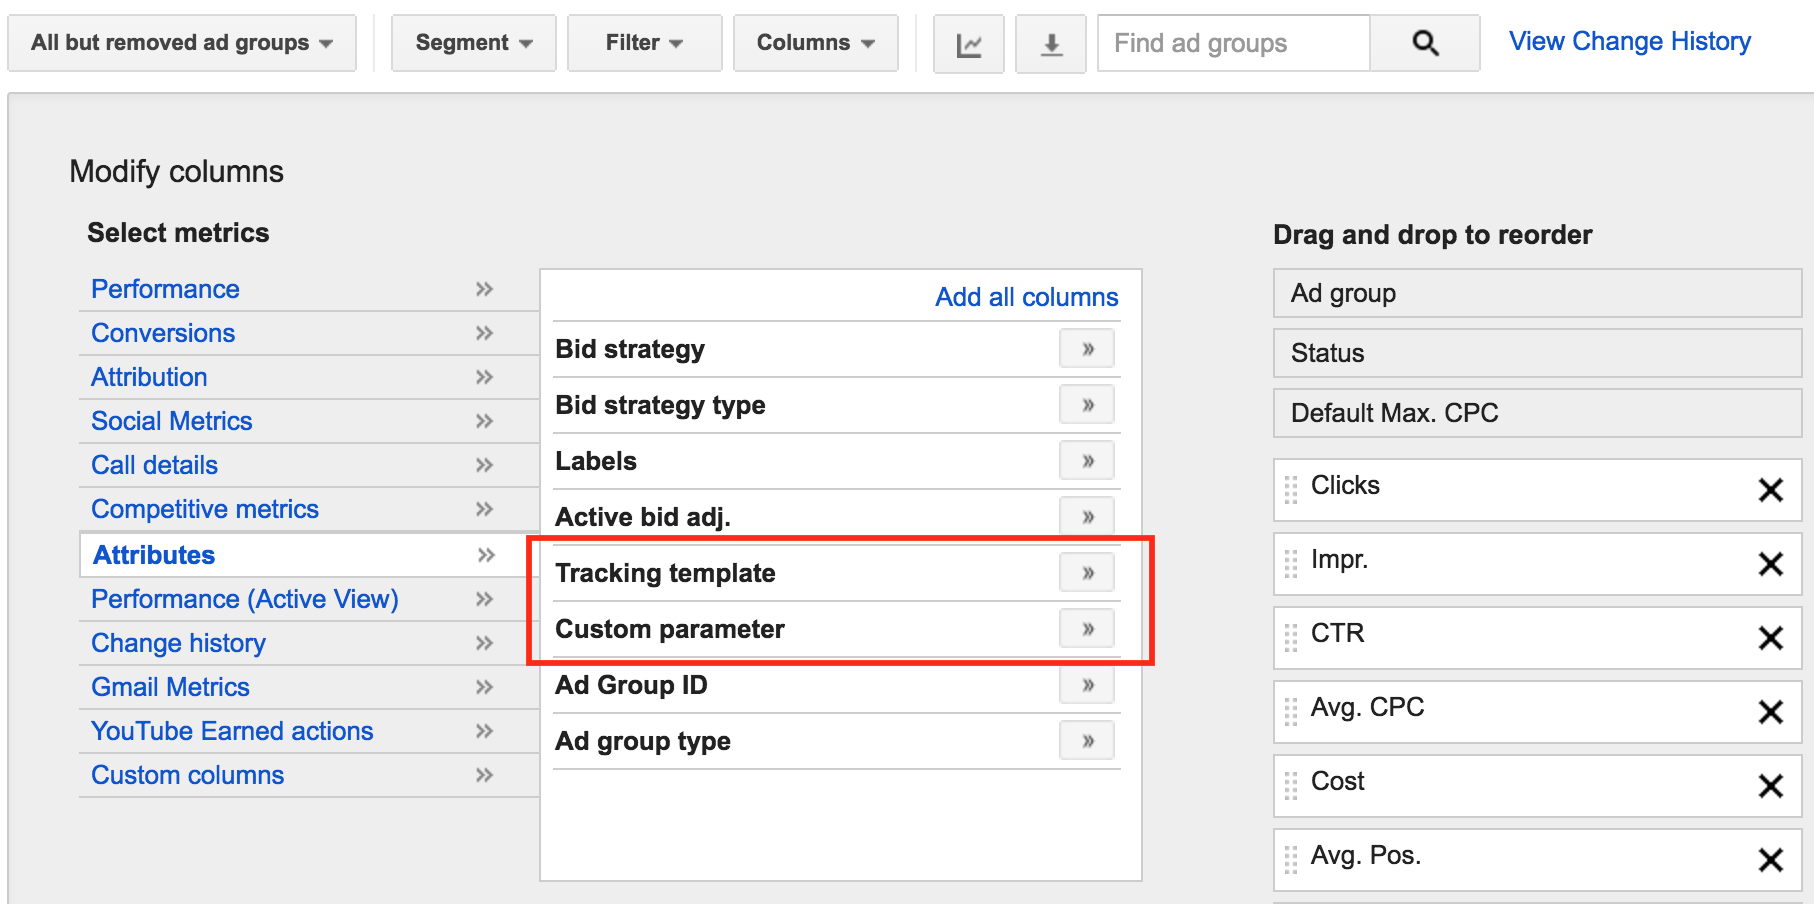 view ad group tracking templates and custom parameters inside adwords screenshot